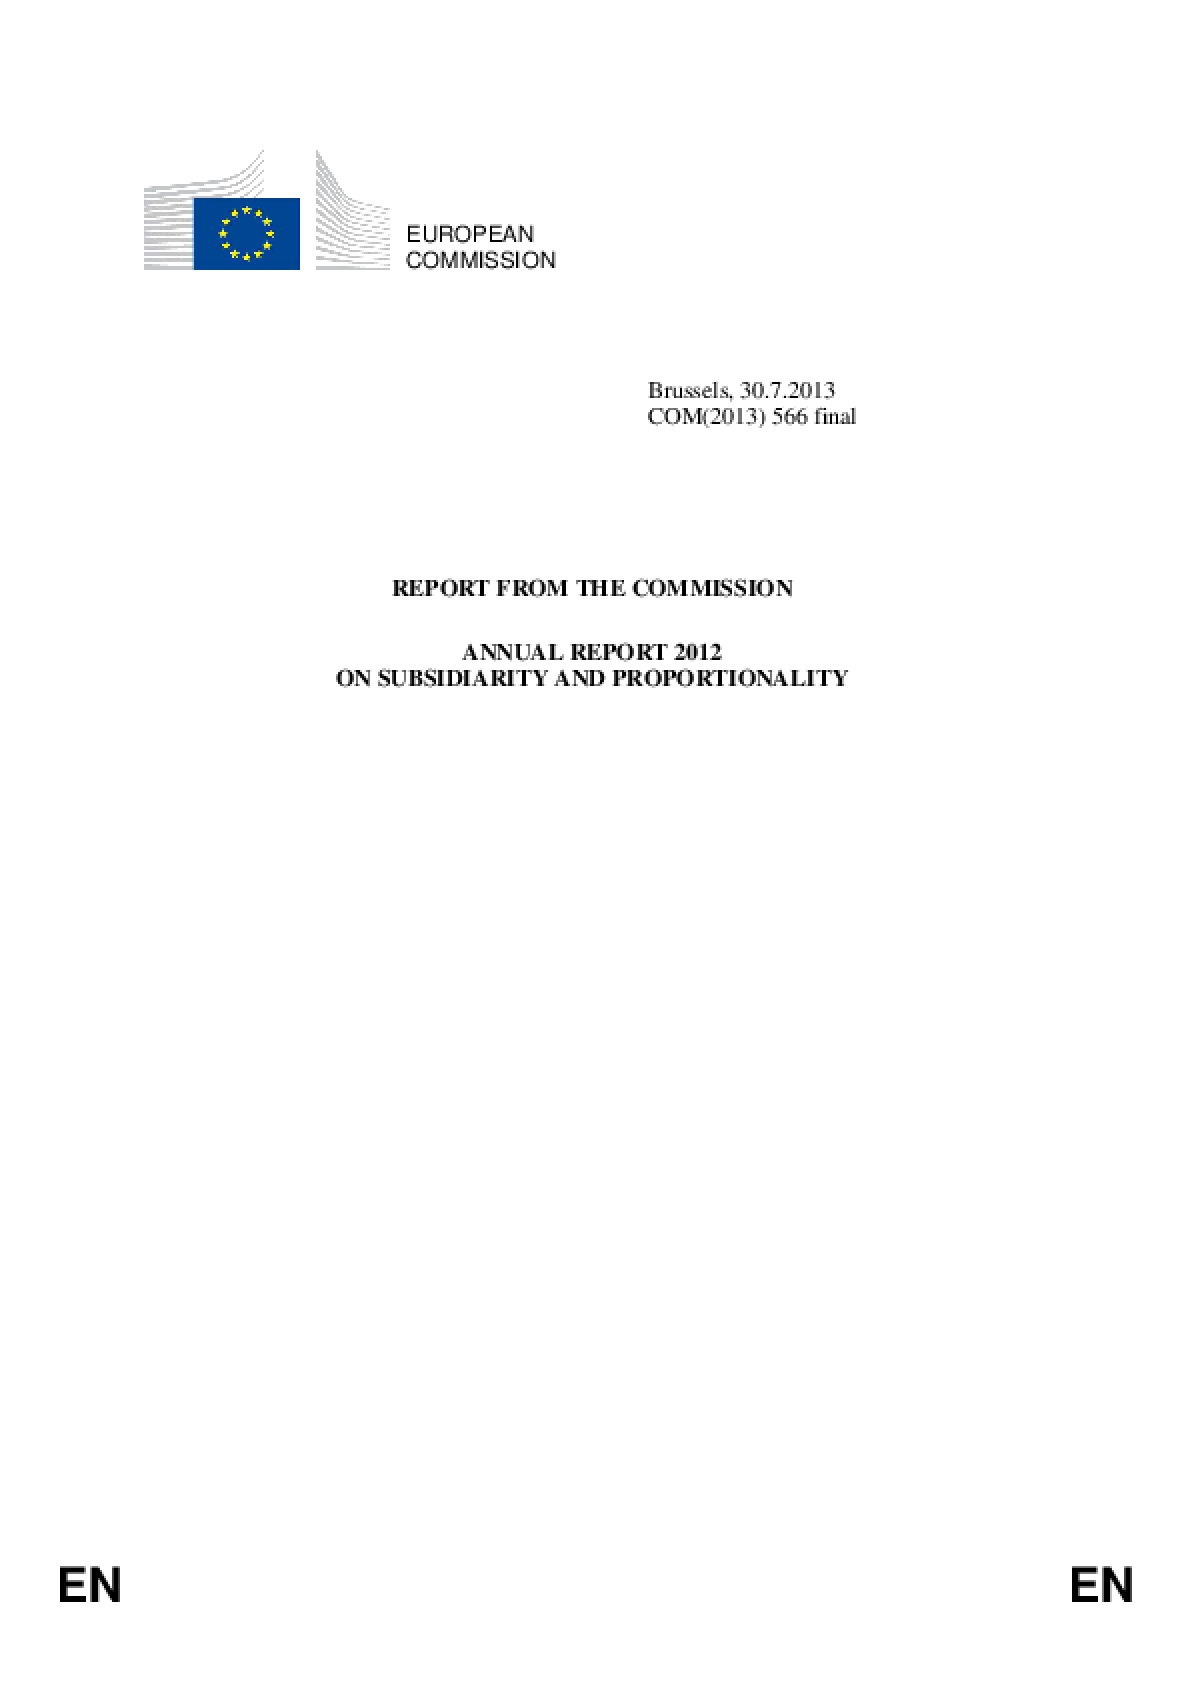 Report from the Commission: Annual Report 2012 on Subsidiarity and Proportionality